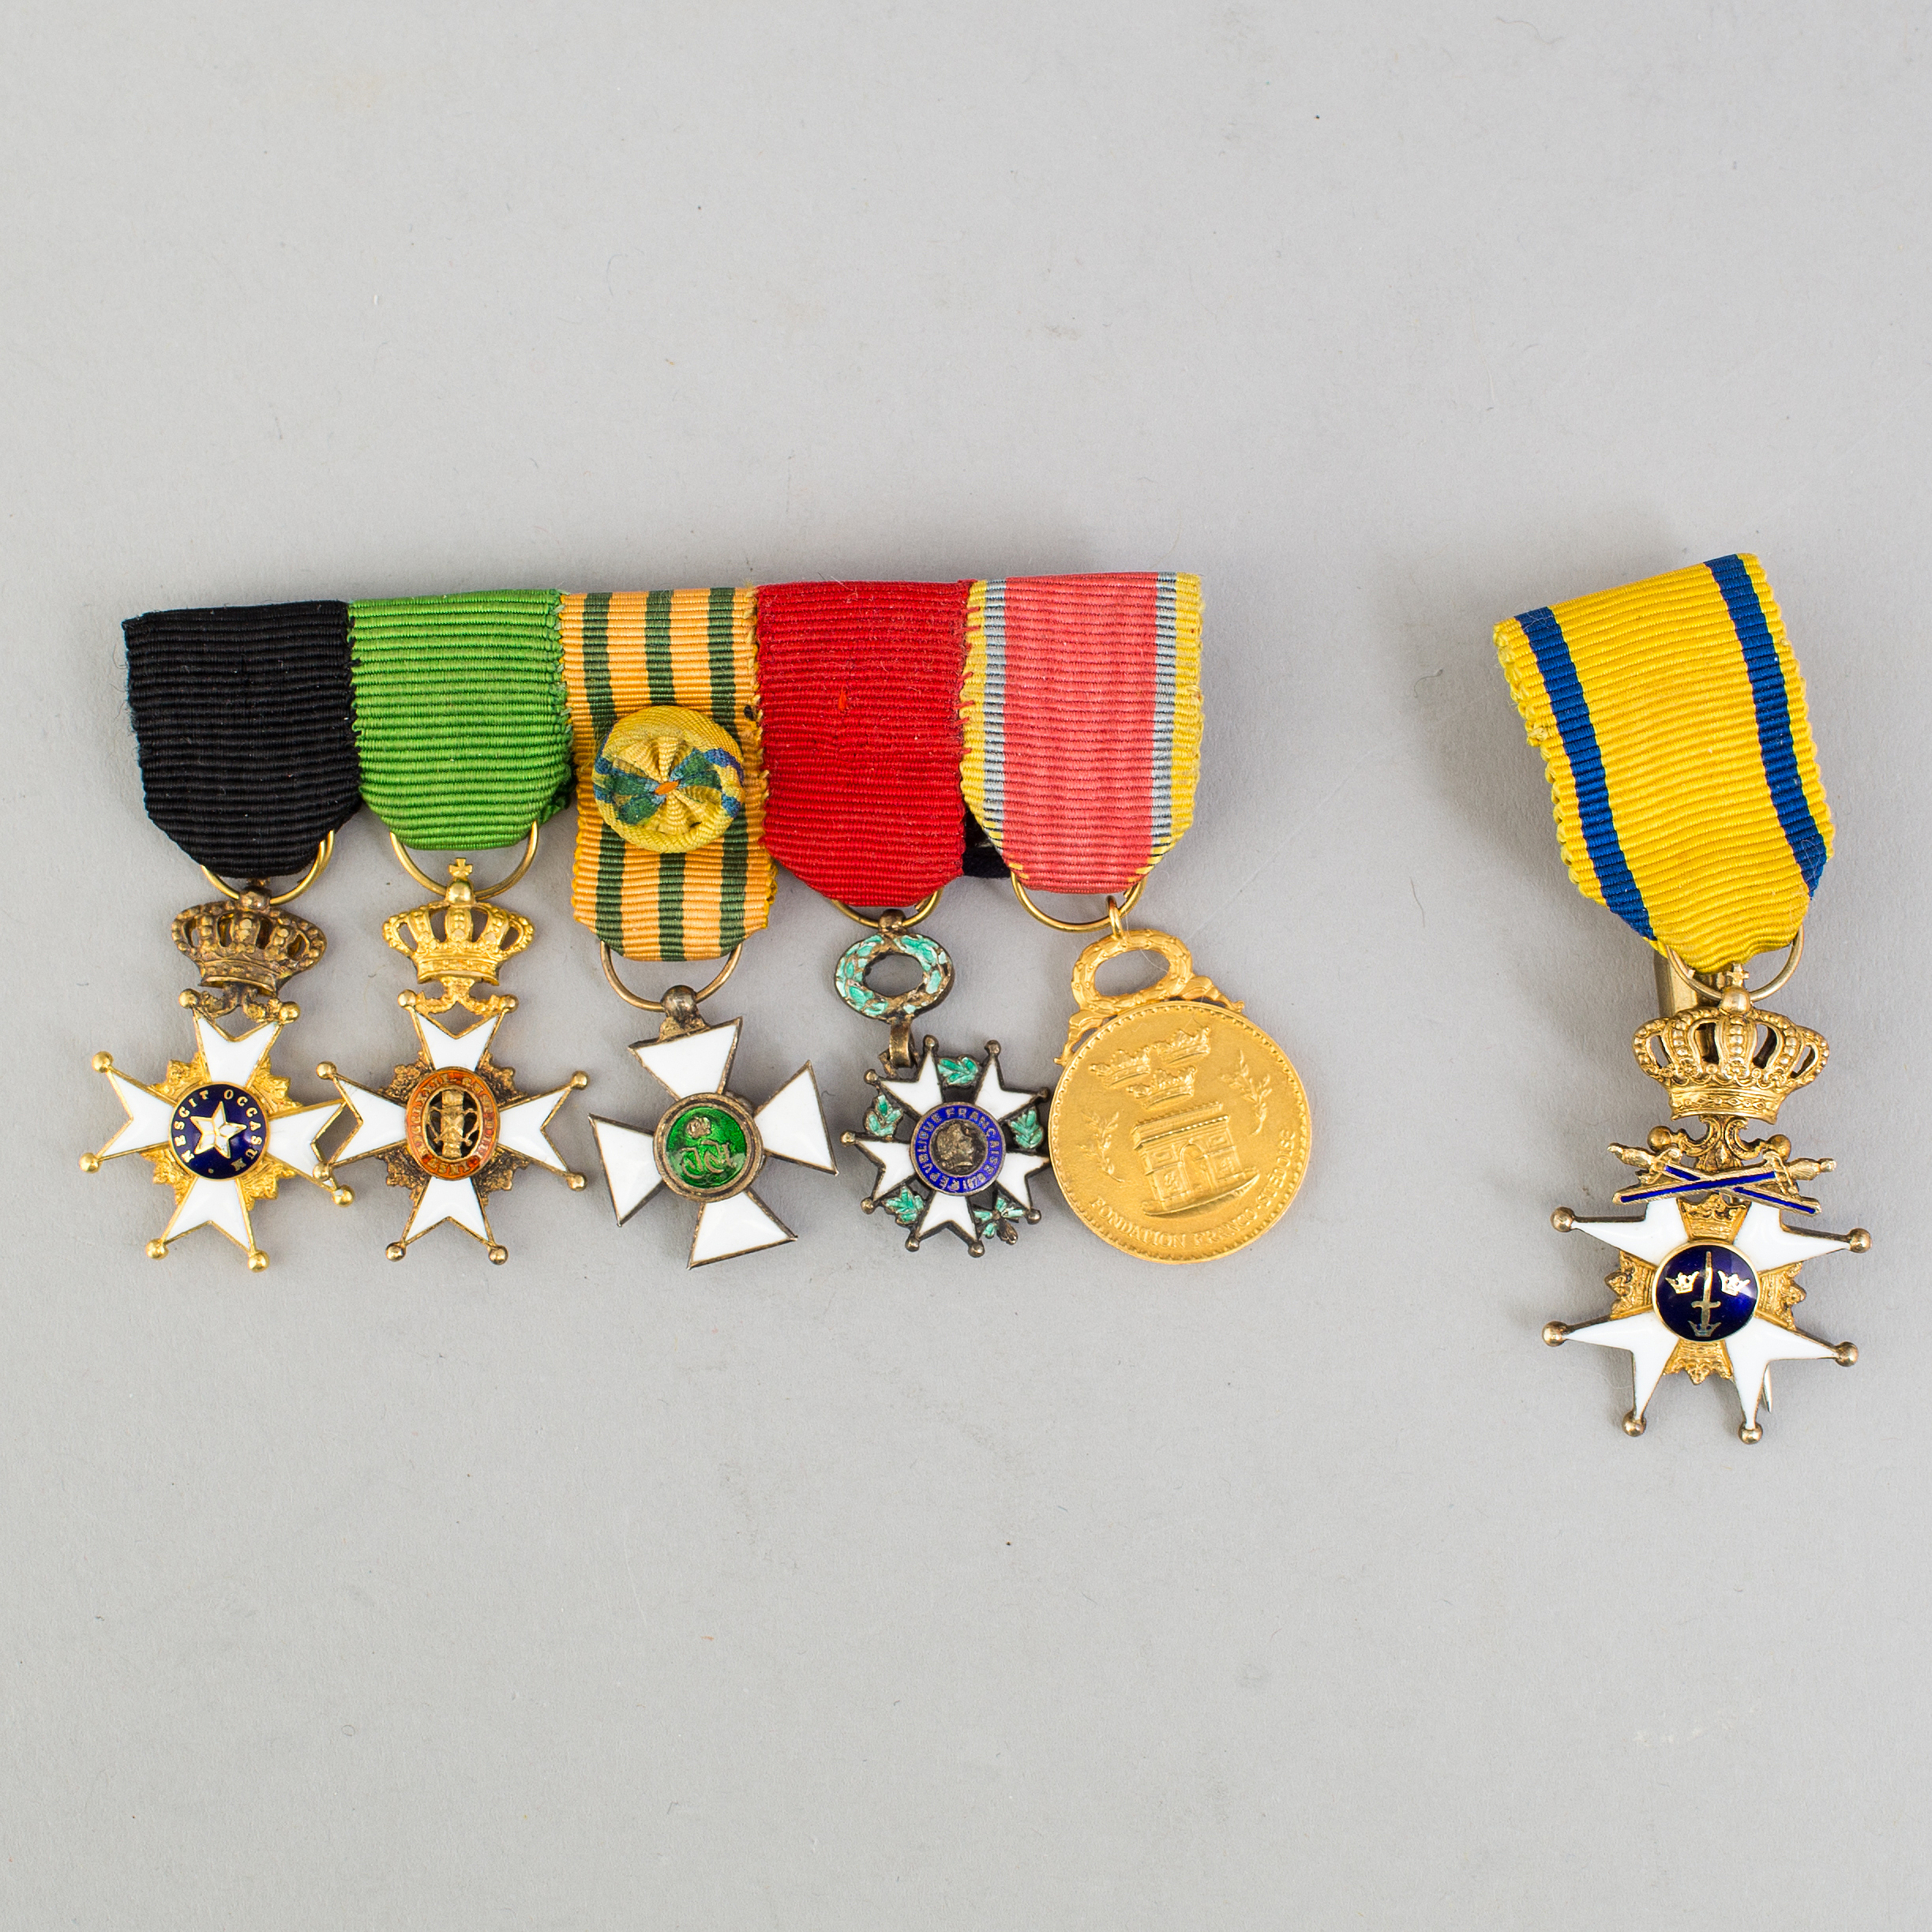 6 miniature medals from first half of the 20th century  - Bukowskis